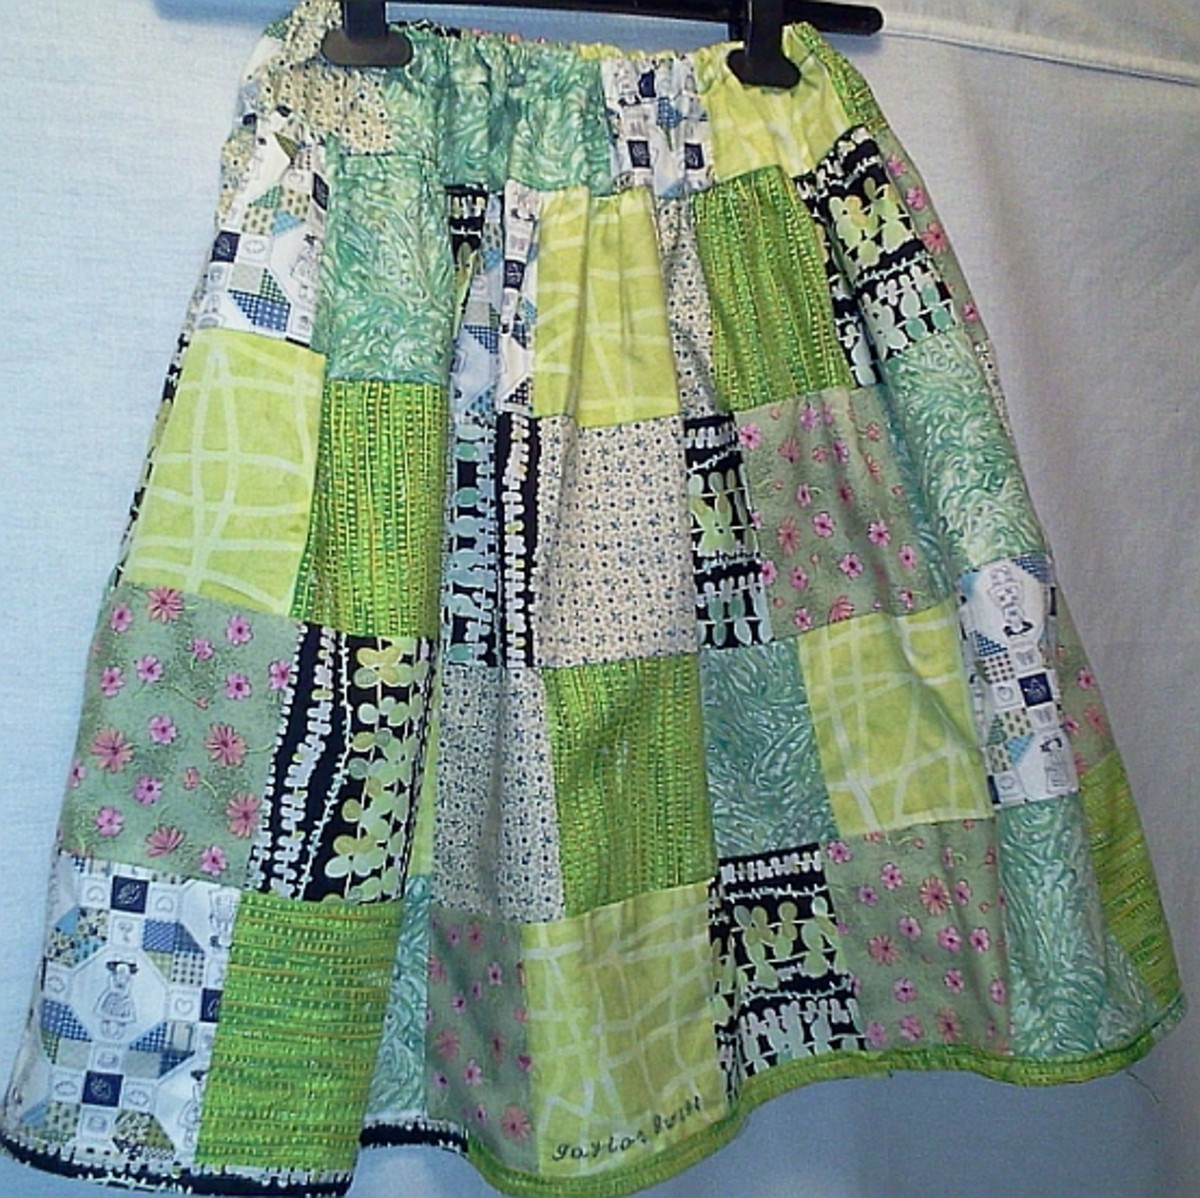 Skirt made from scraps.